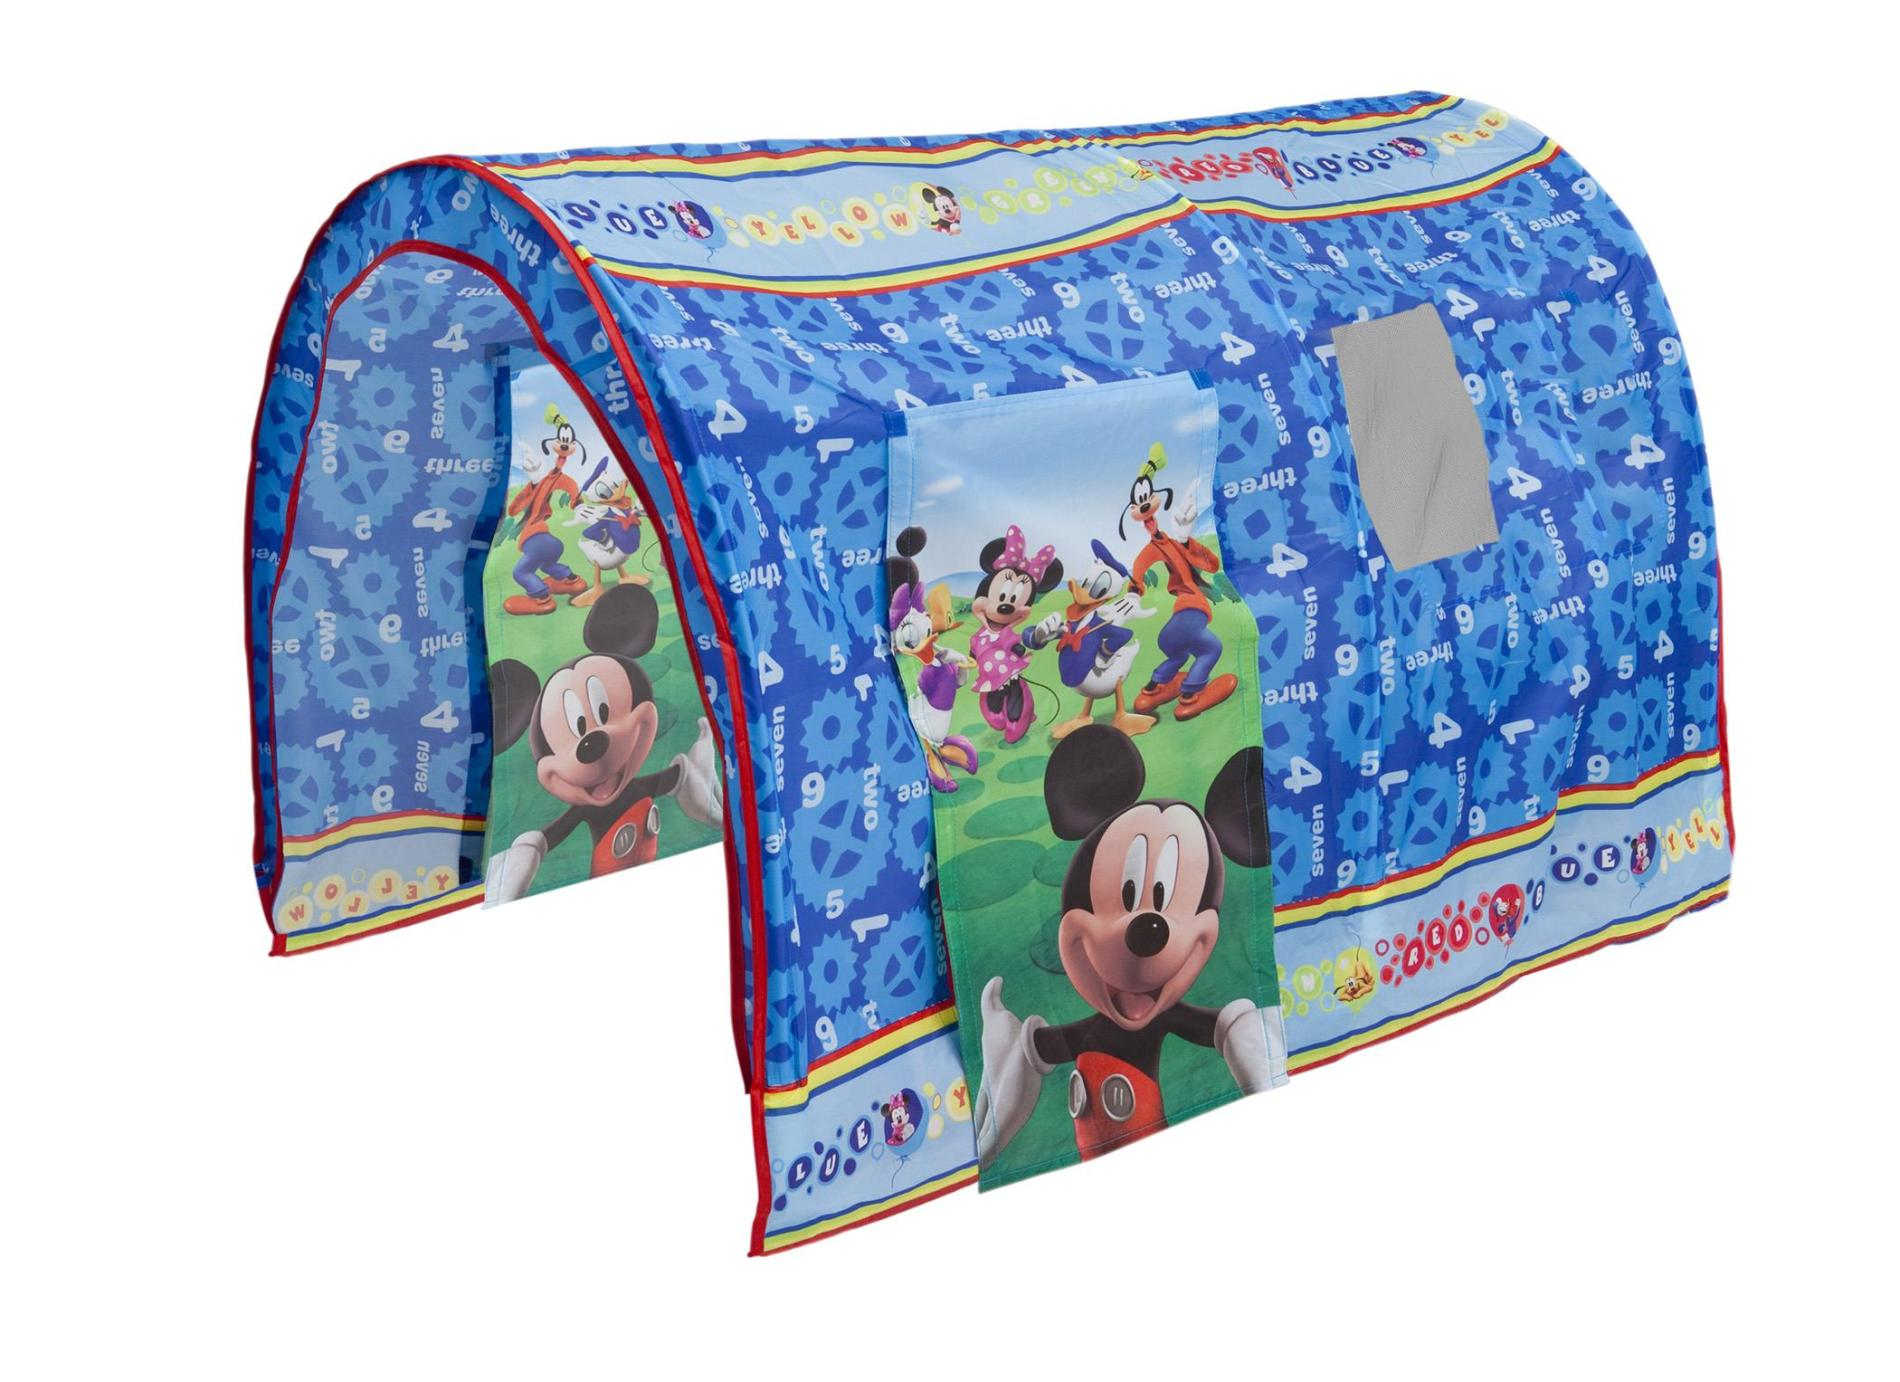 Toddler's Tent Canopy - Mickey Mouse